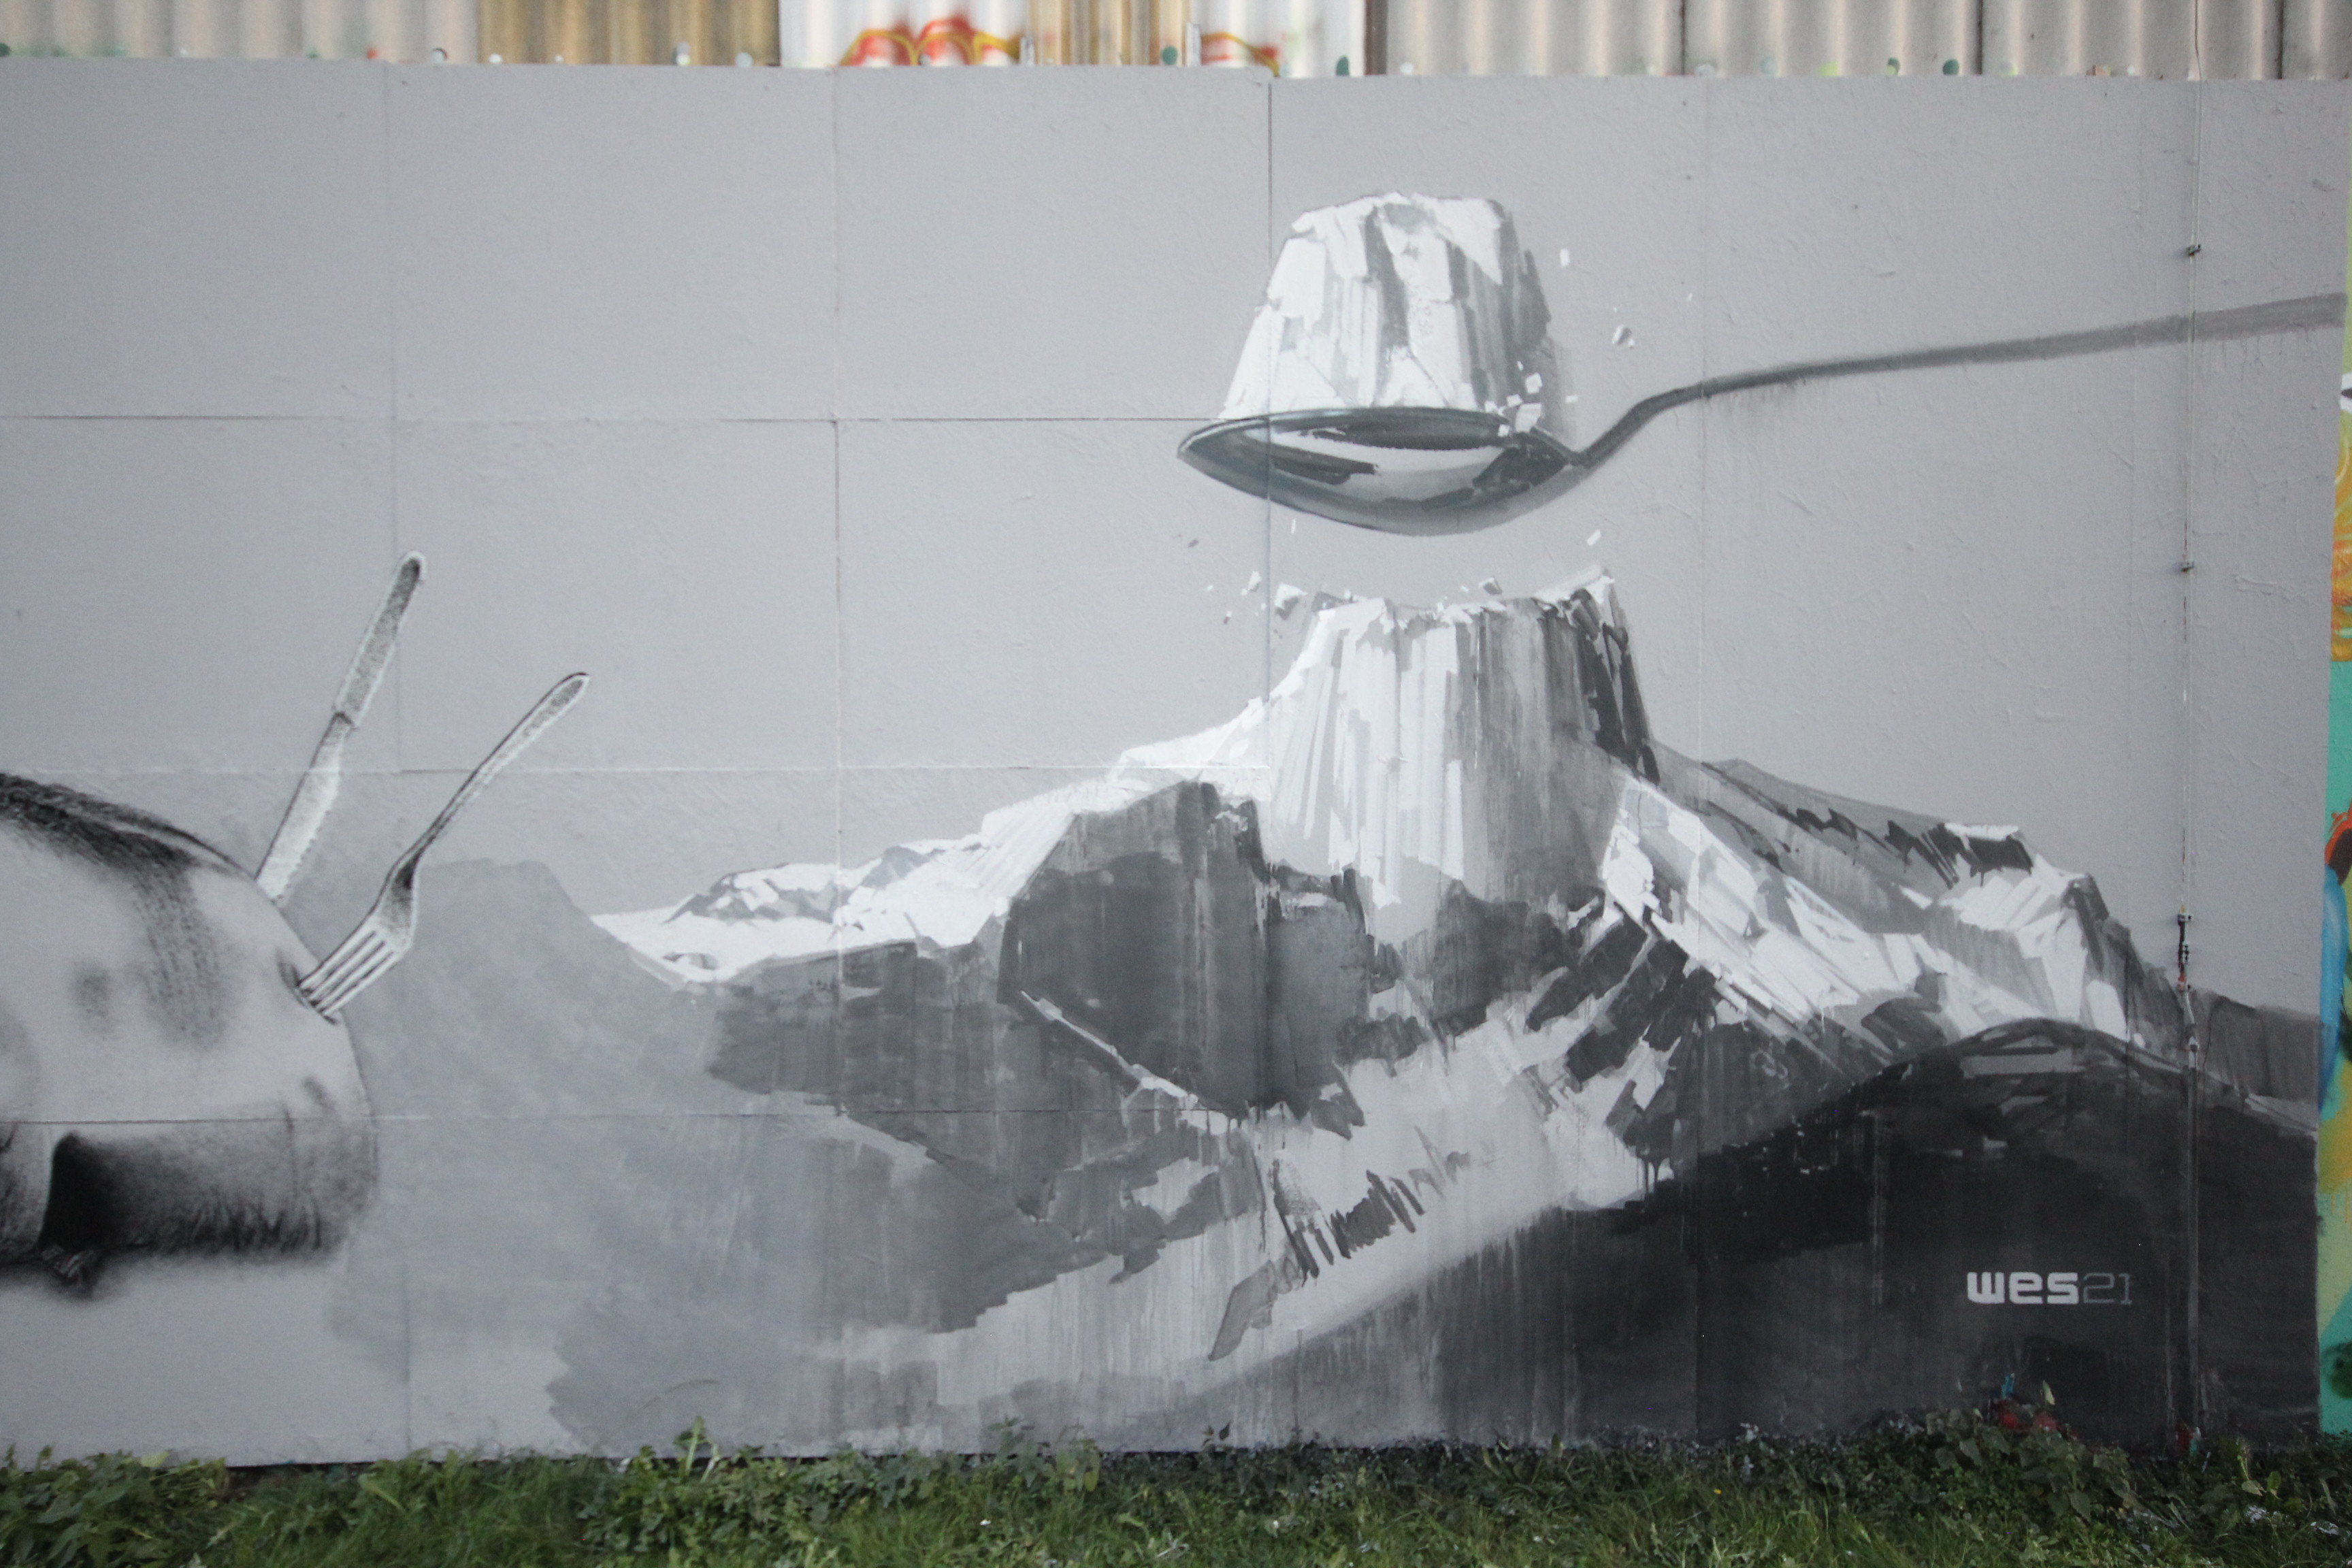 Two new murals from Ethos in Switzerland and USA Artes & contextos Ethos 4